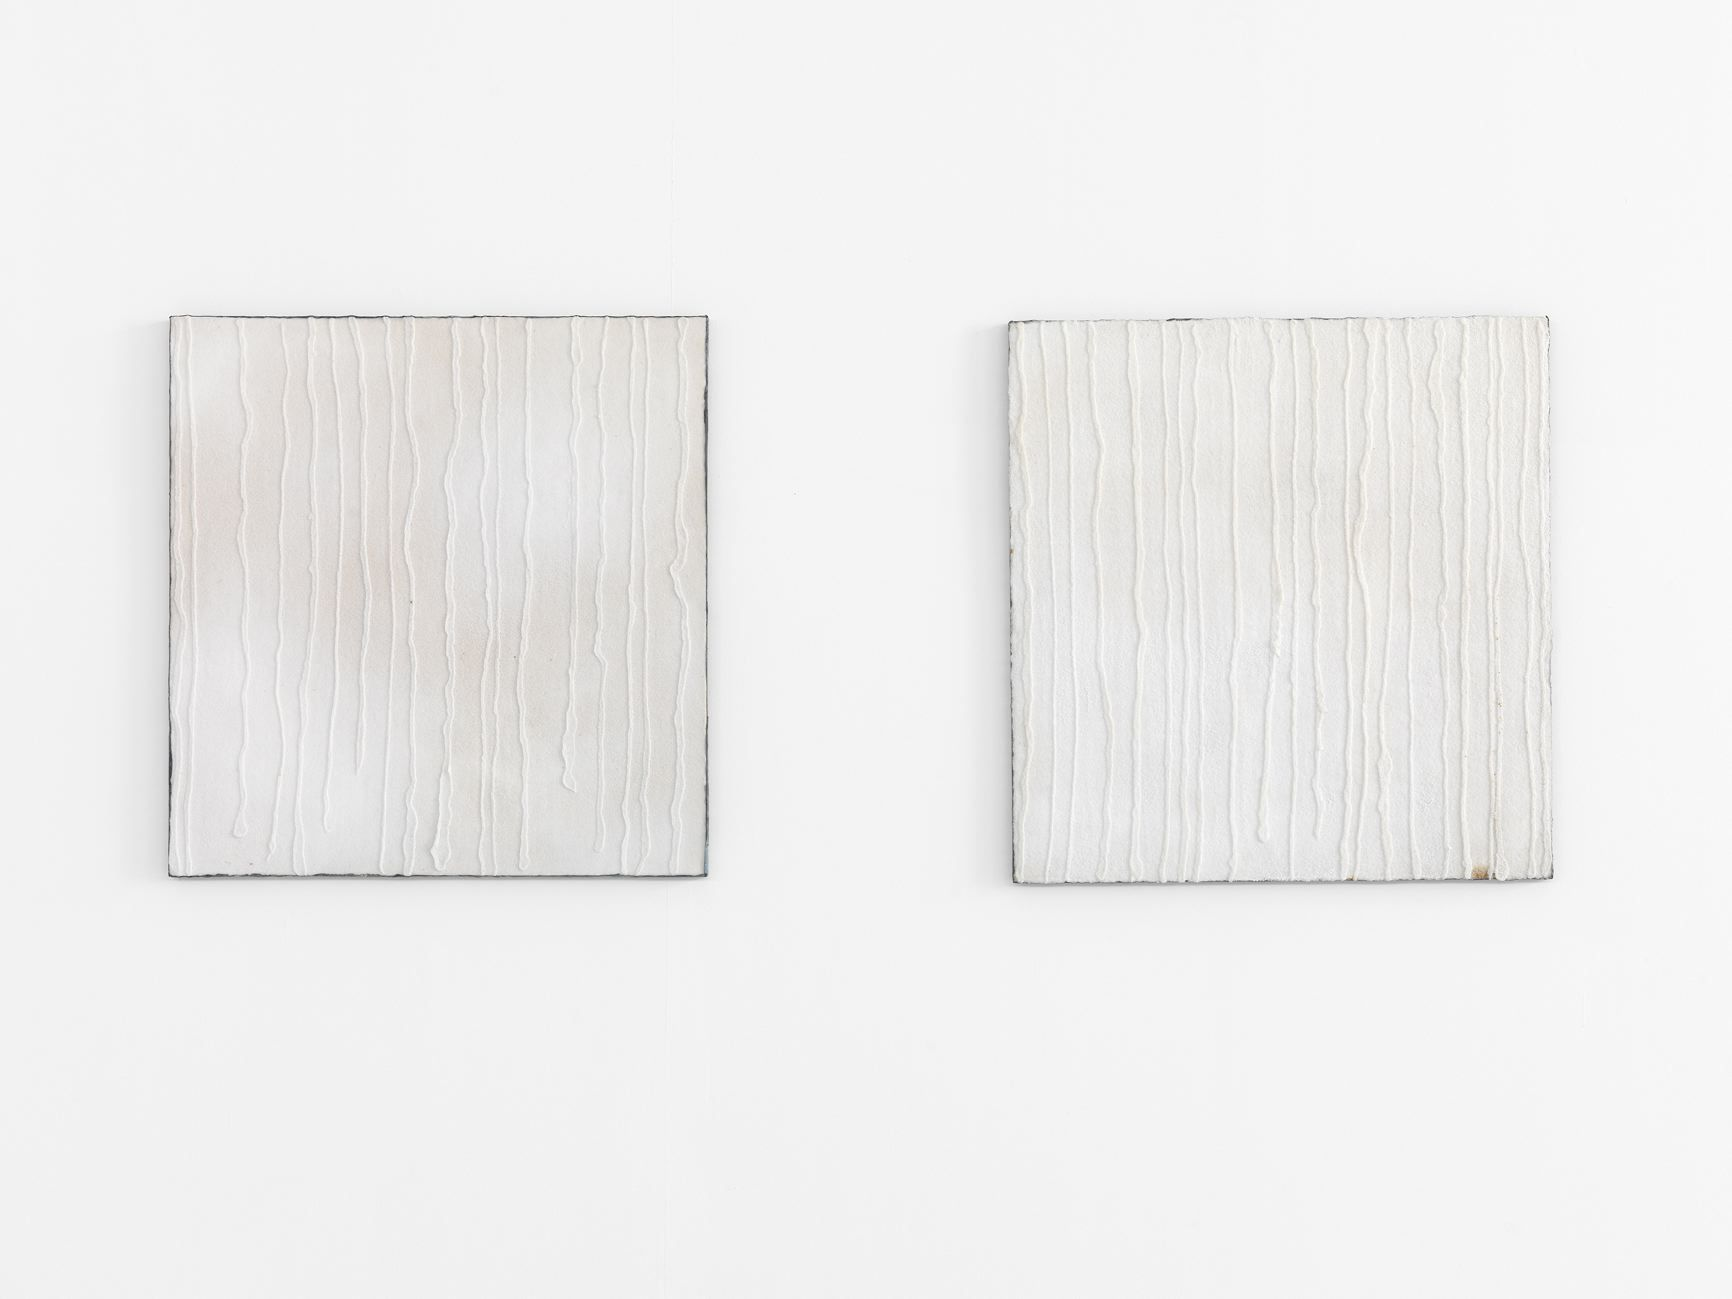 diptych with two white panels made of salt and lead by pier paolo calzolari